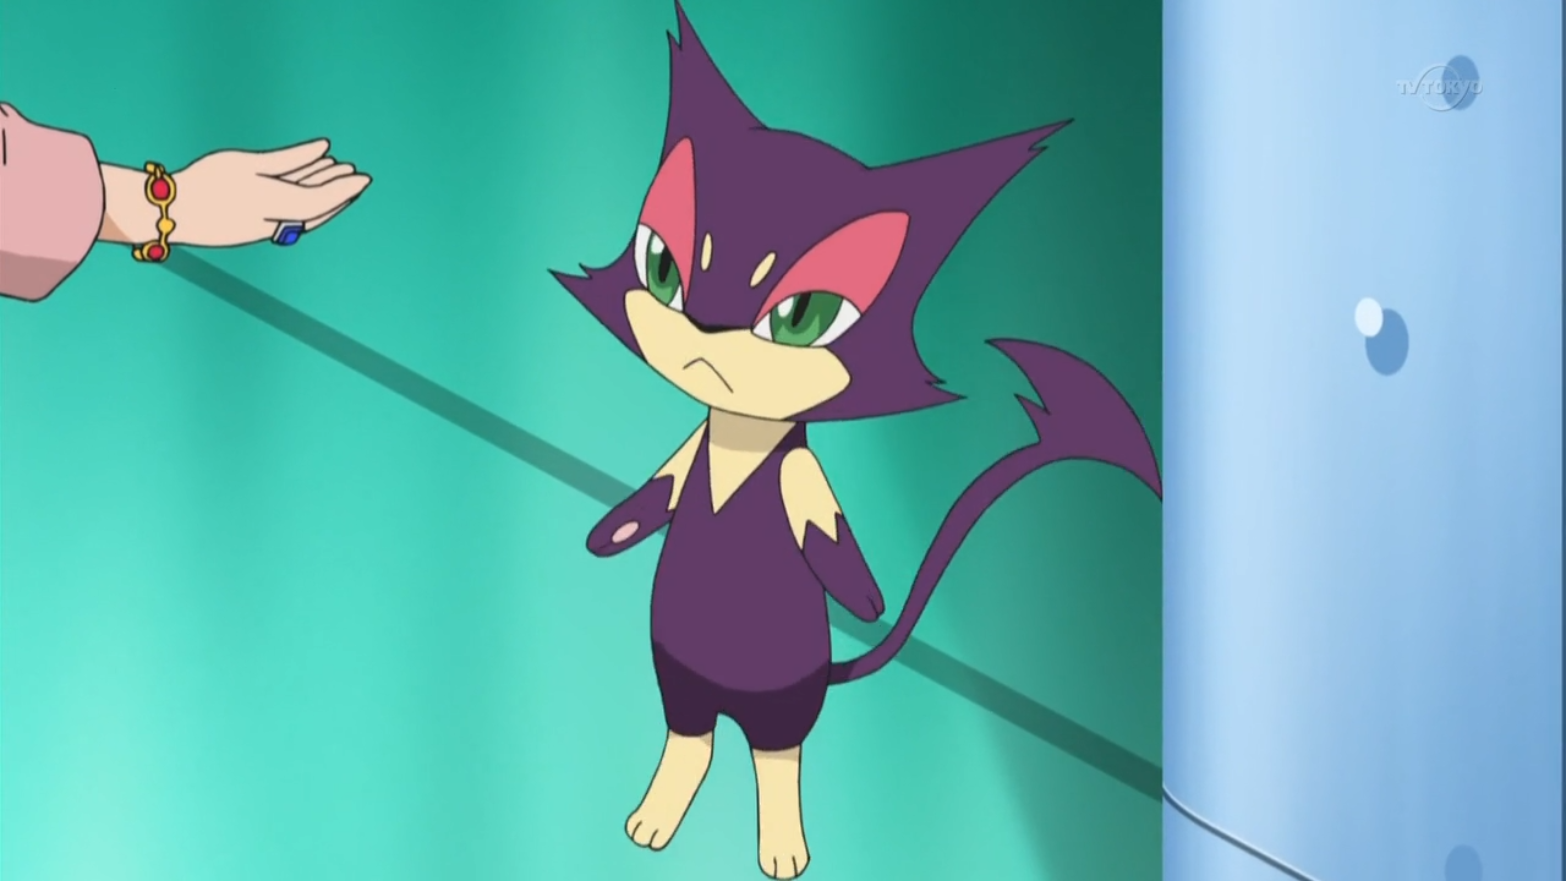 Mrs. Ripple had a Purrloin, who wandered around the Decolore Queen and found out the real criminal.